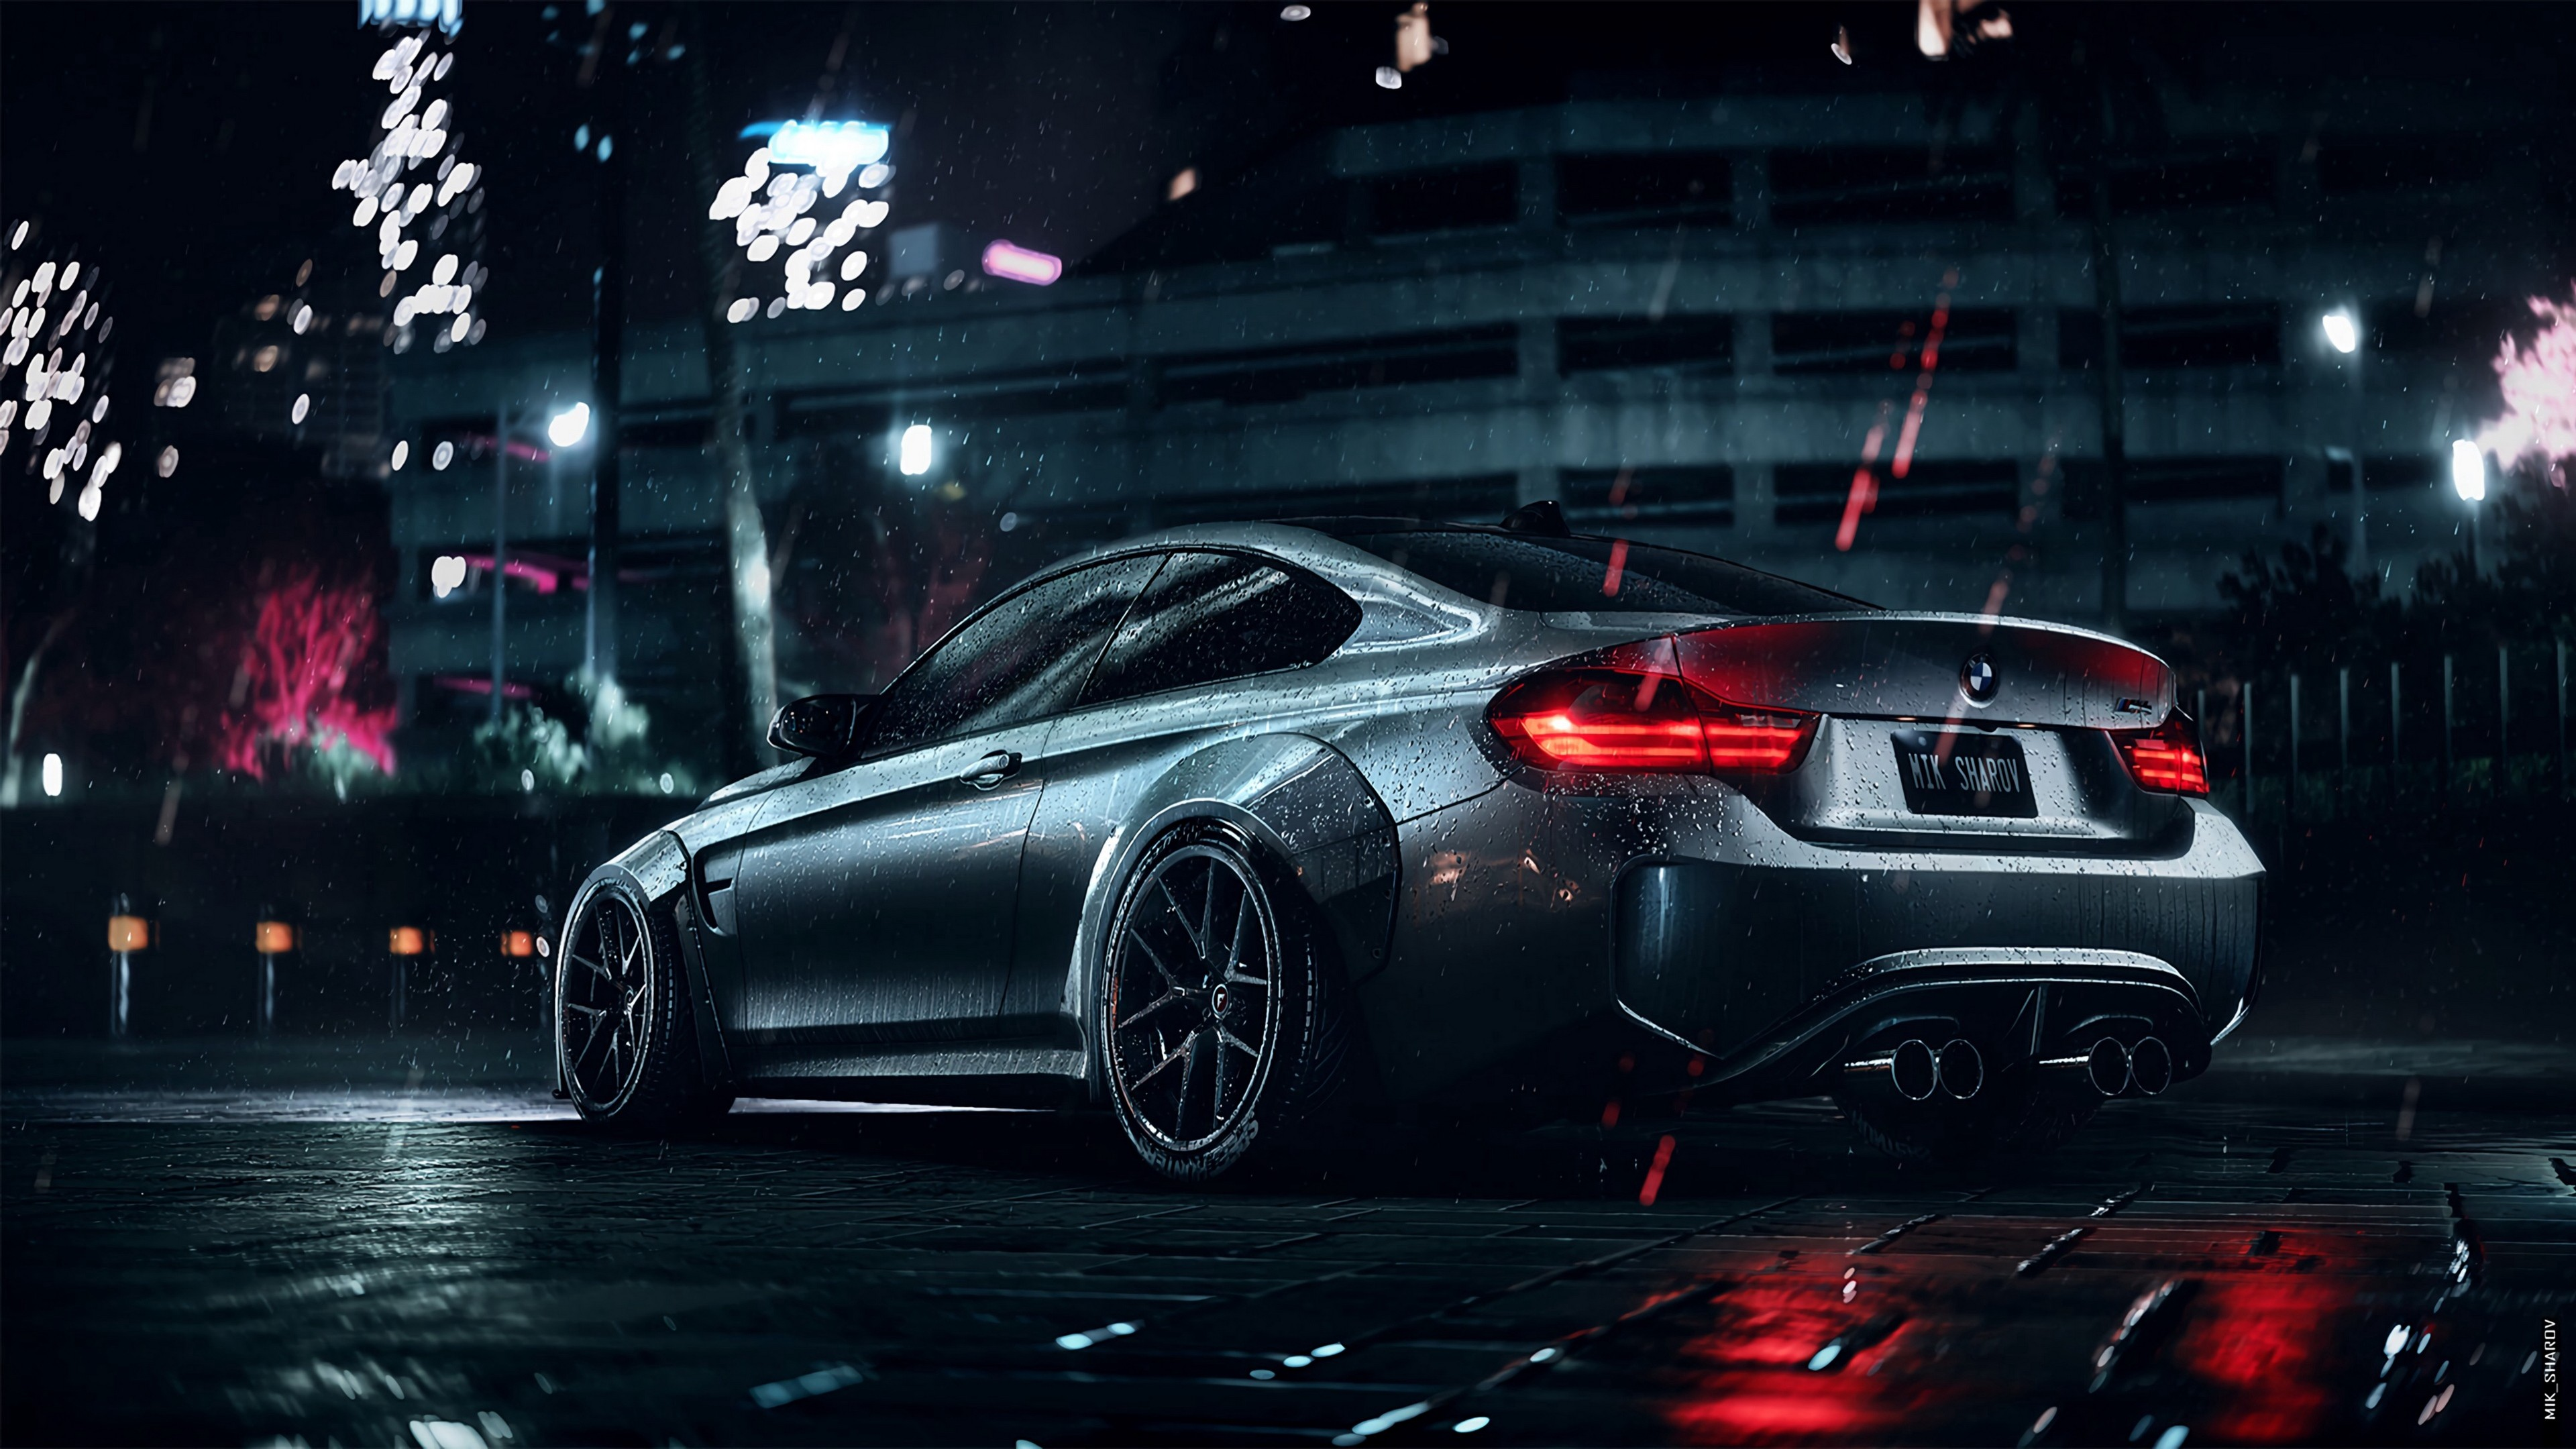 4k Bmw Car Sports Wallpaper 3840x2160